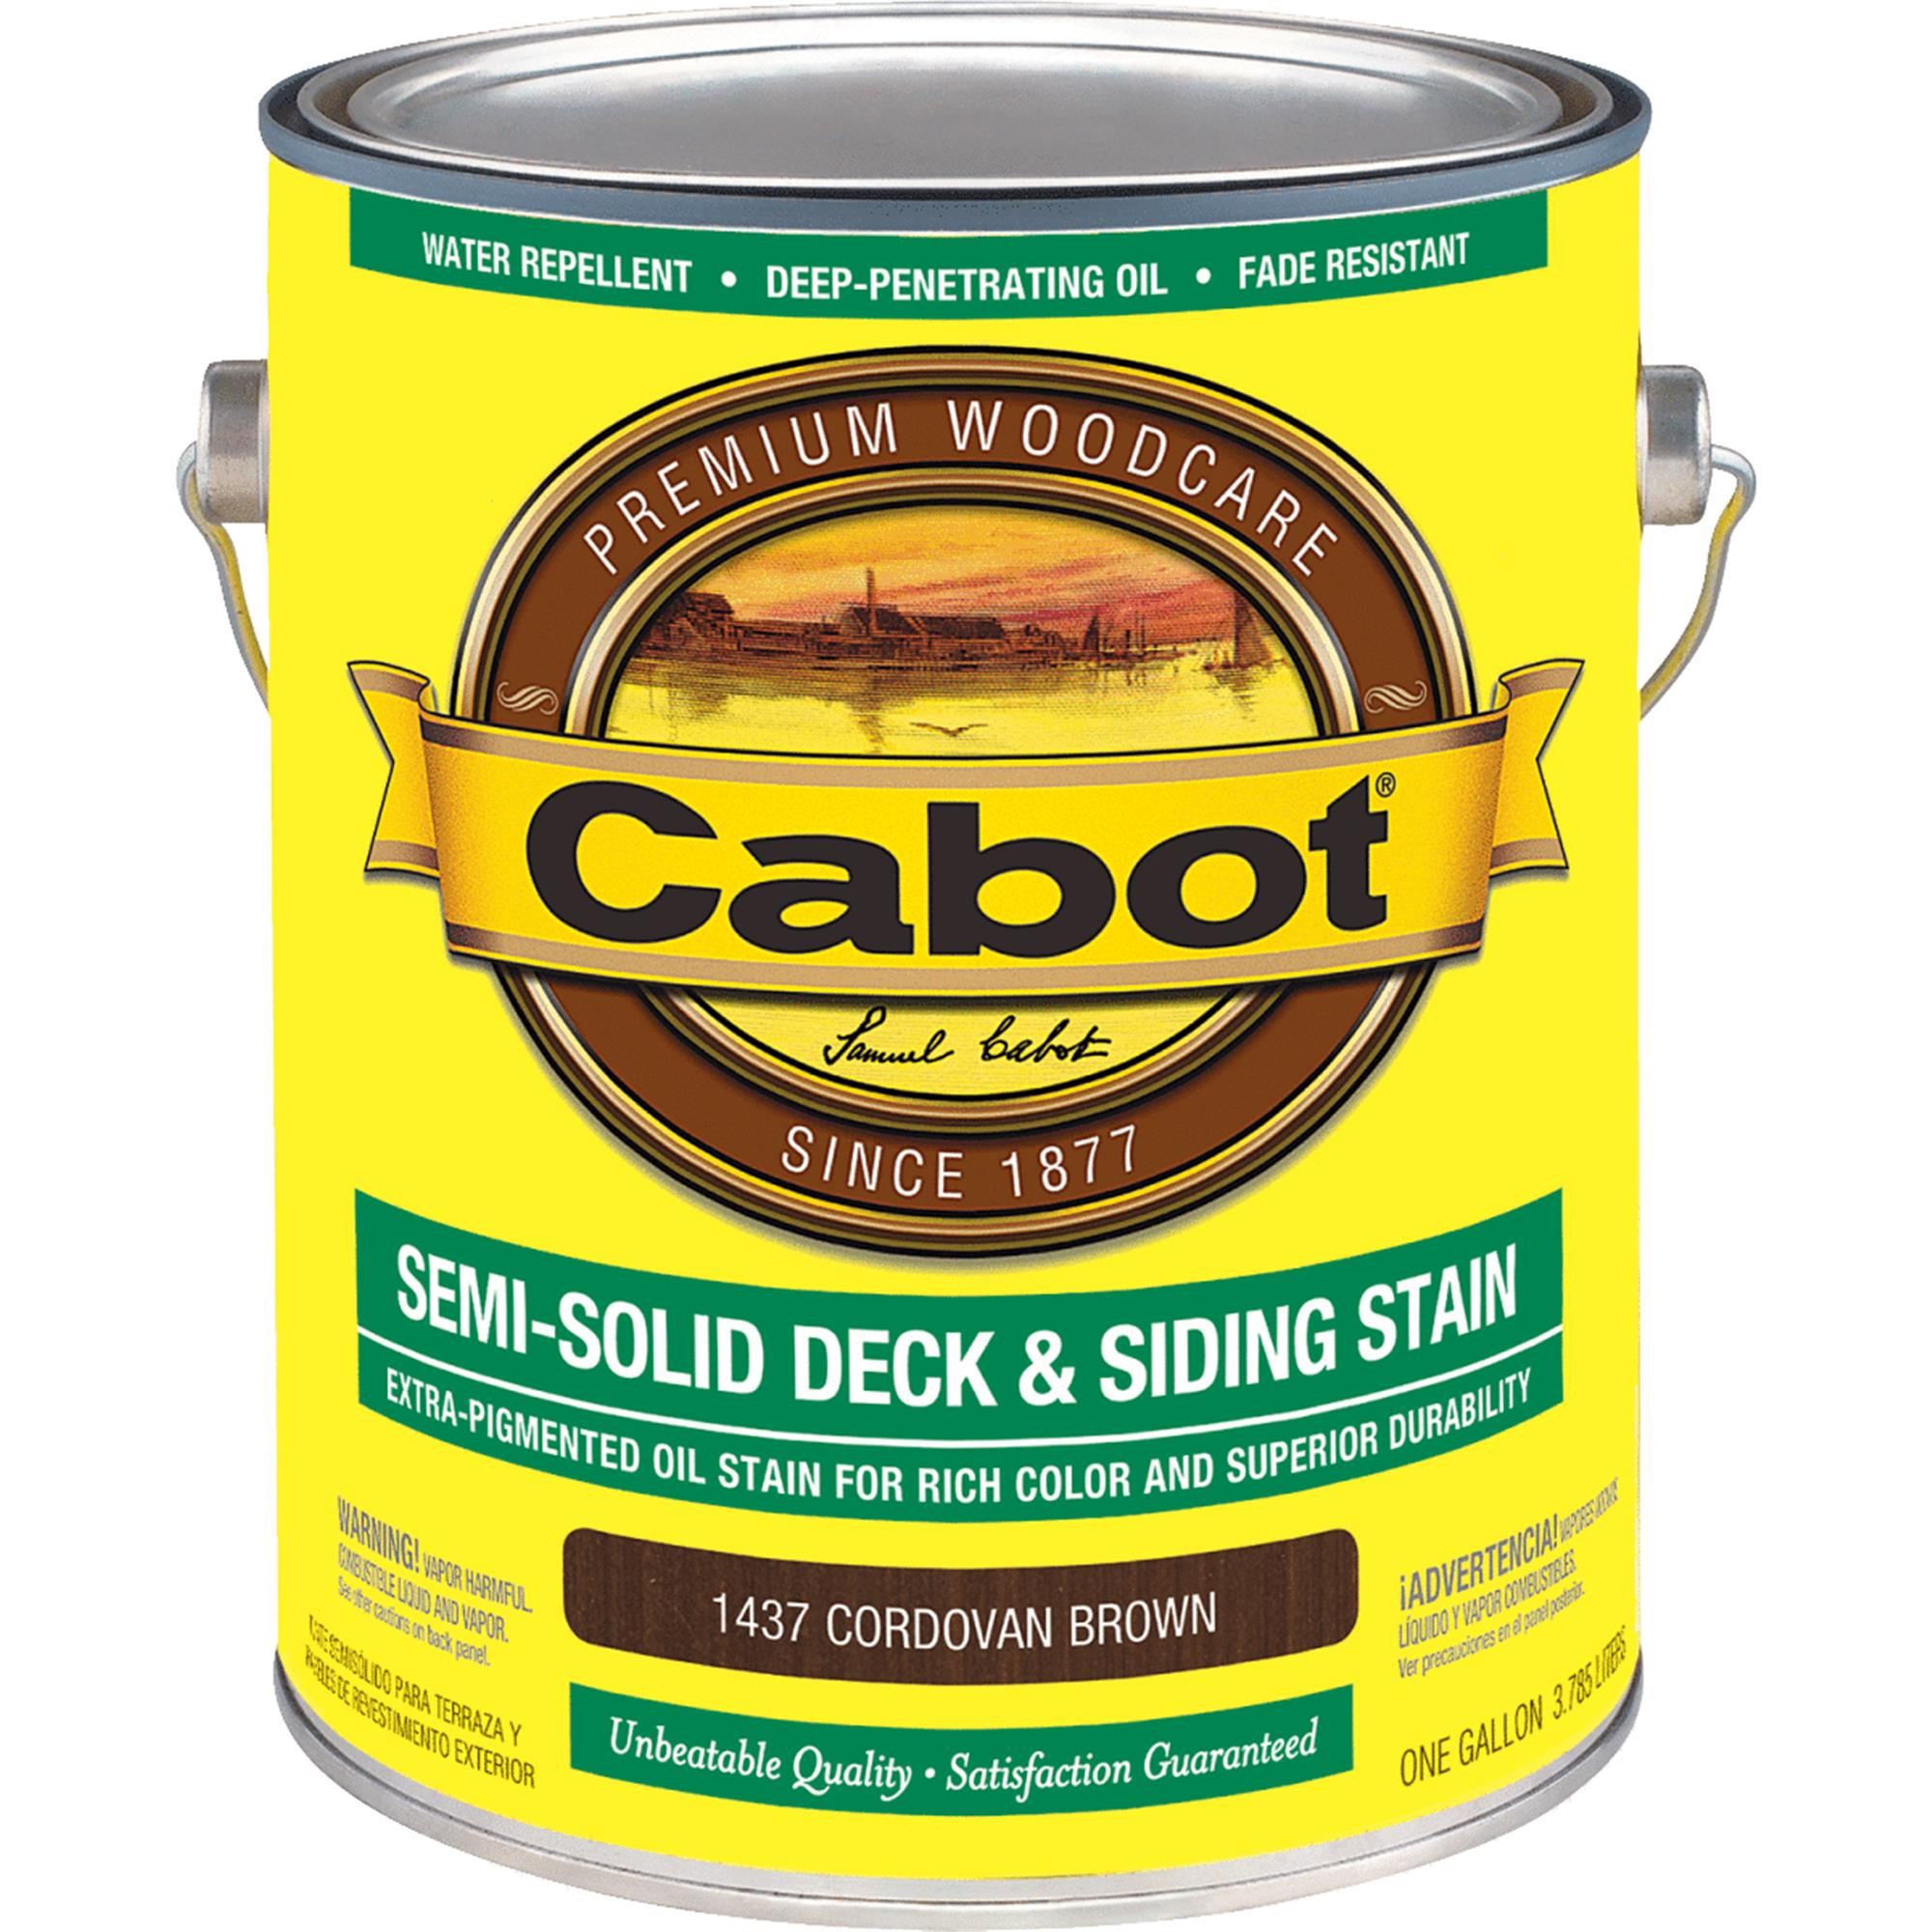 Cabot Semi-Solid Deck & Siding Stain